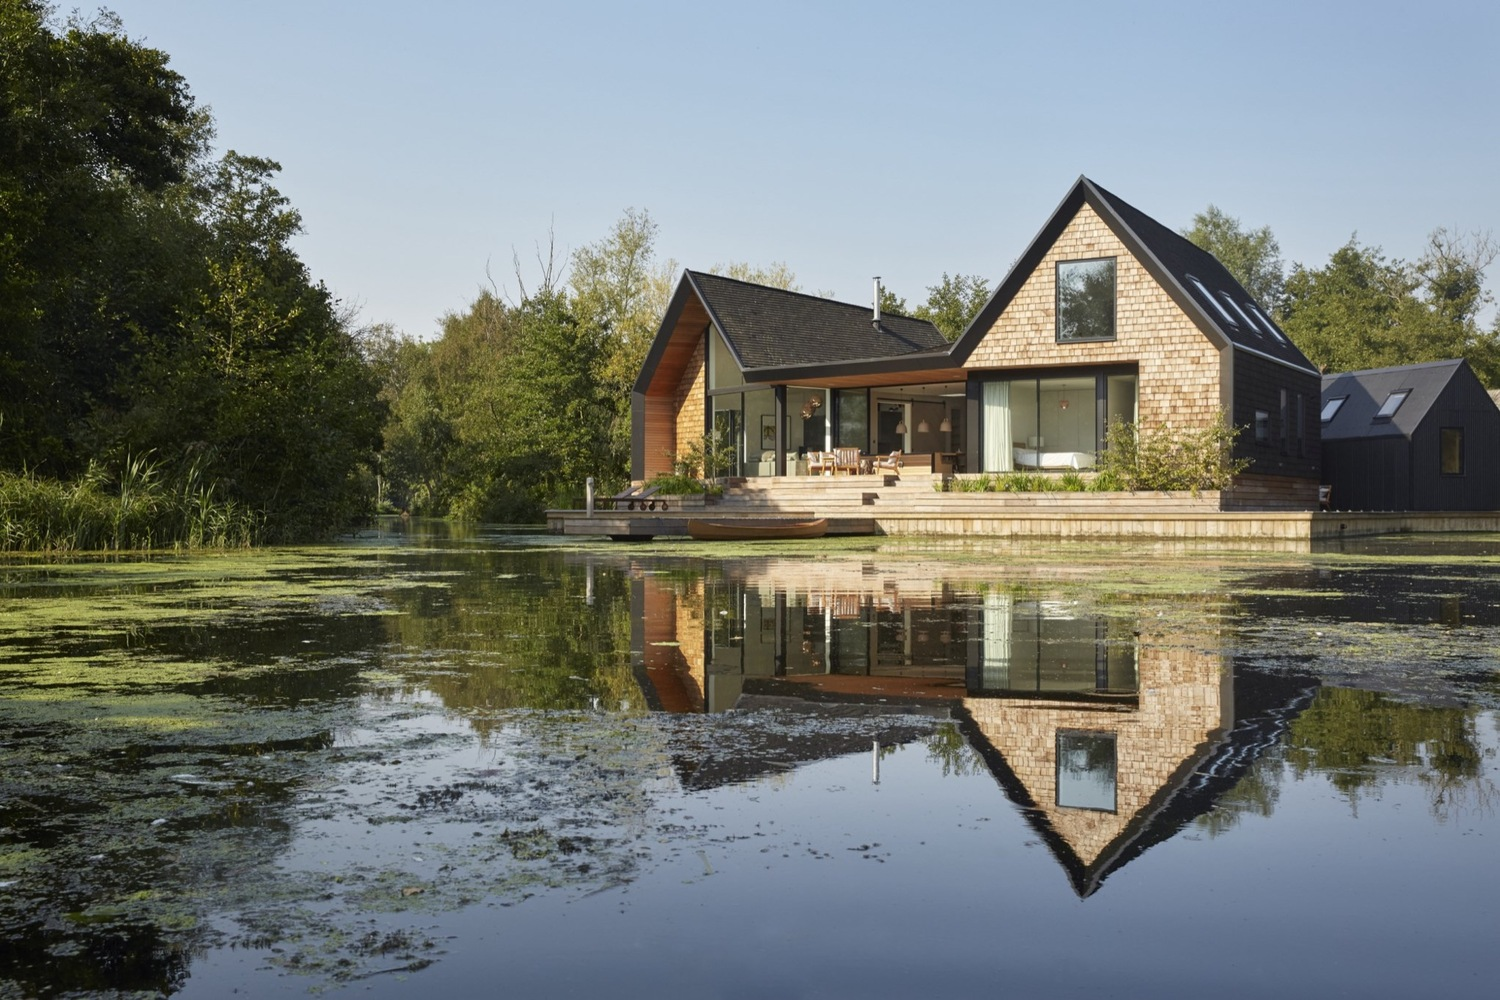 Country Kitchen Designs Backwater House By Platform 5 Architects In Norfolk Uk